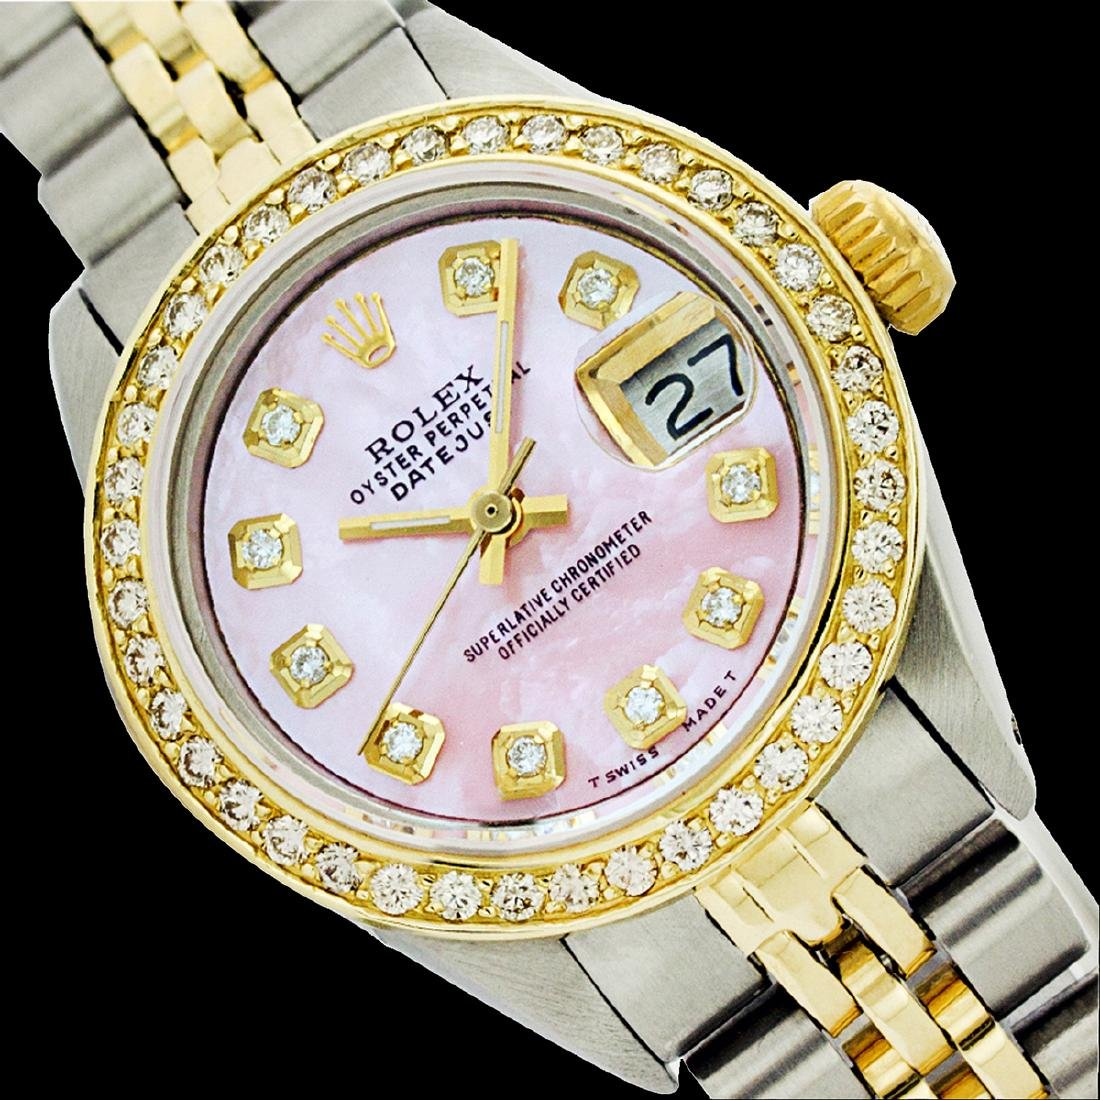 Rolex Men's Two Tone 14K Gold/SS, QuickSet, Diamond